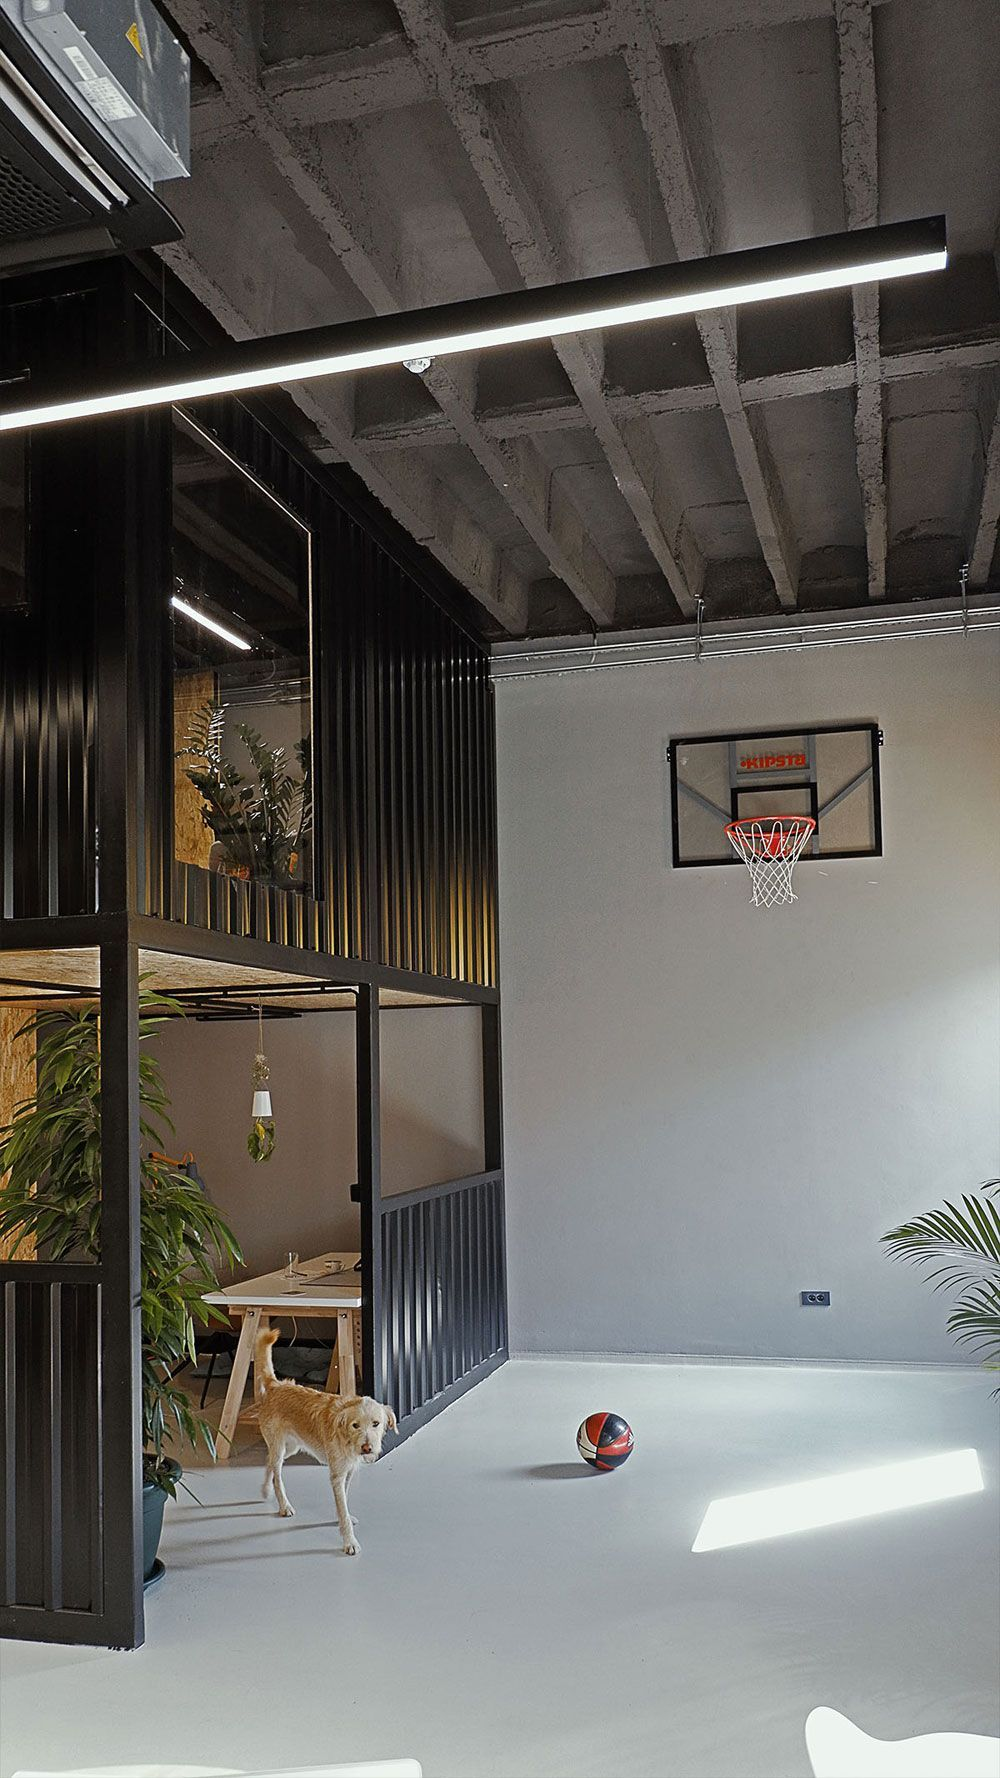 I To Nije Sve Creative Agency Moves Into New Offices In Zagreb Croatia Agency Agencyofficeinspiration Home Office Design Hotel Room Design Office Design